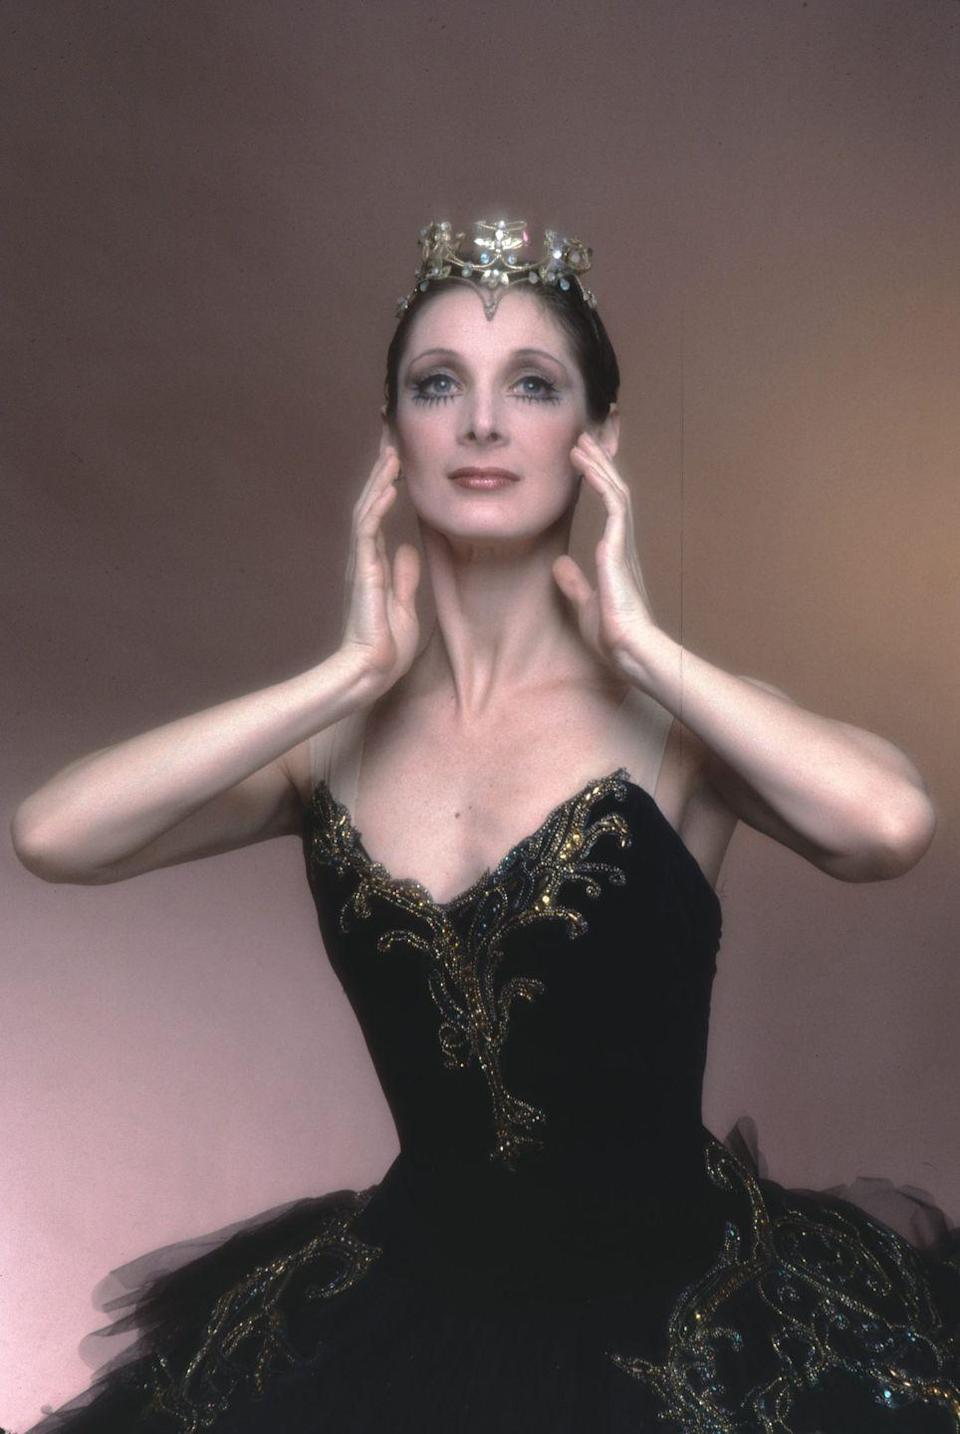 <p>Whether you go classic ballet or modernized Natalie Portman, the Black Swan costume tows the line between spooky and sophisticated.</p>